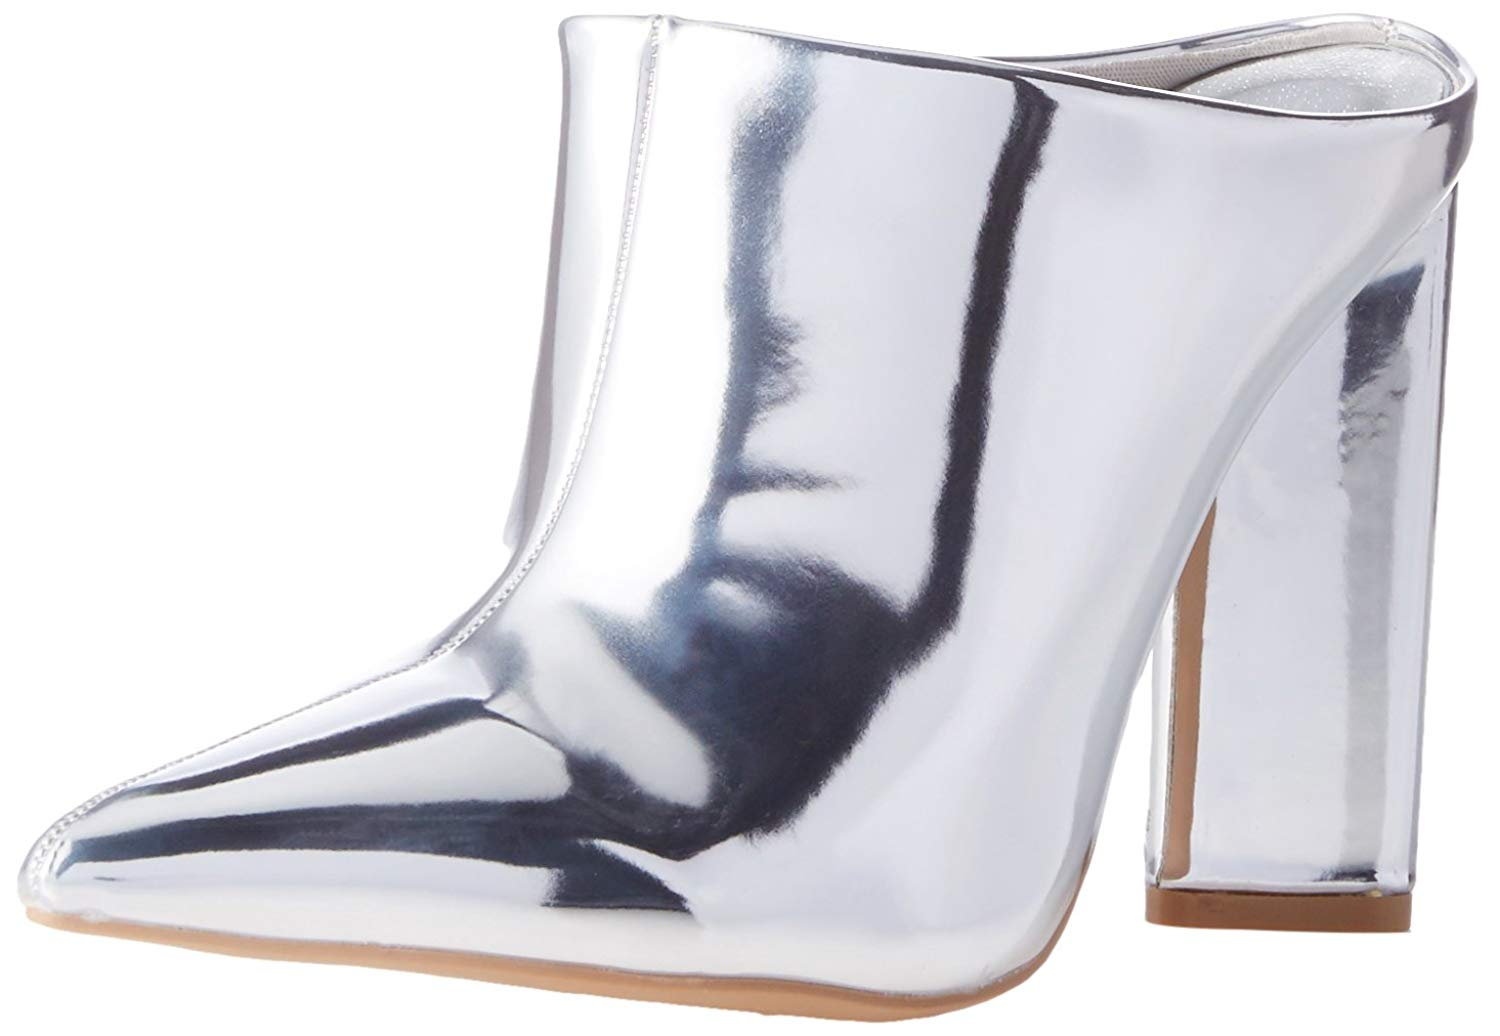 032539f3f8a90 Details about Qupid Womens Miss-40 Pointed Toe Mules, Silver, Size 6.0 elrx